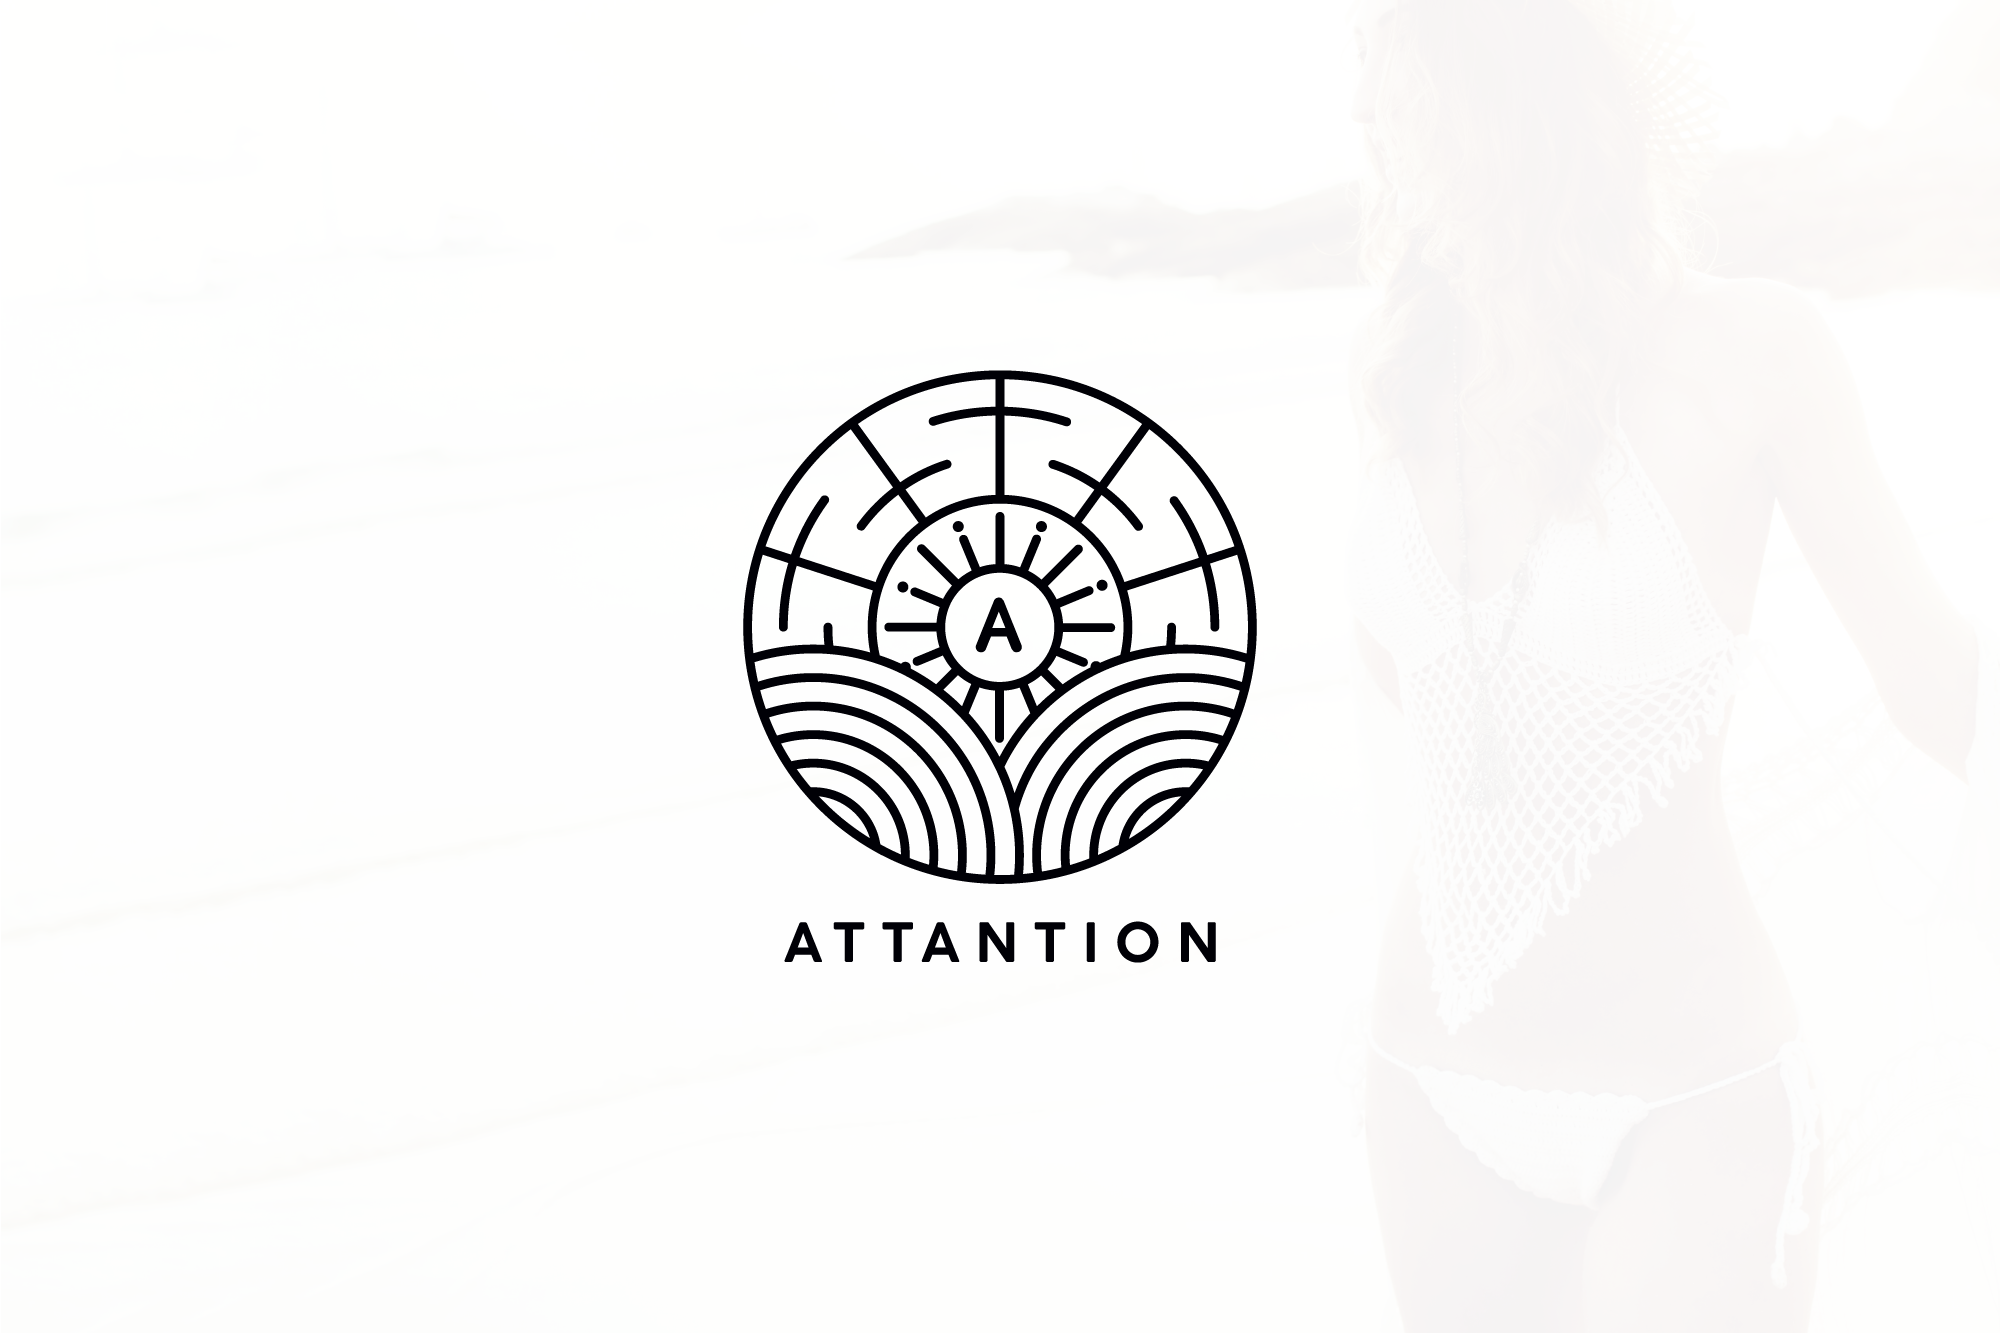 Attantion main logo